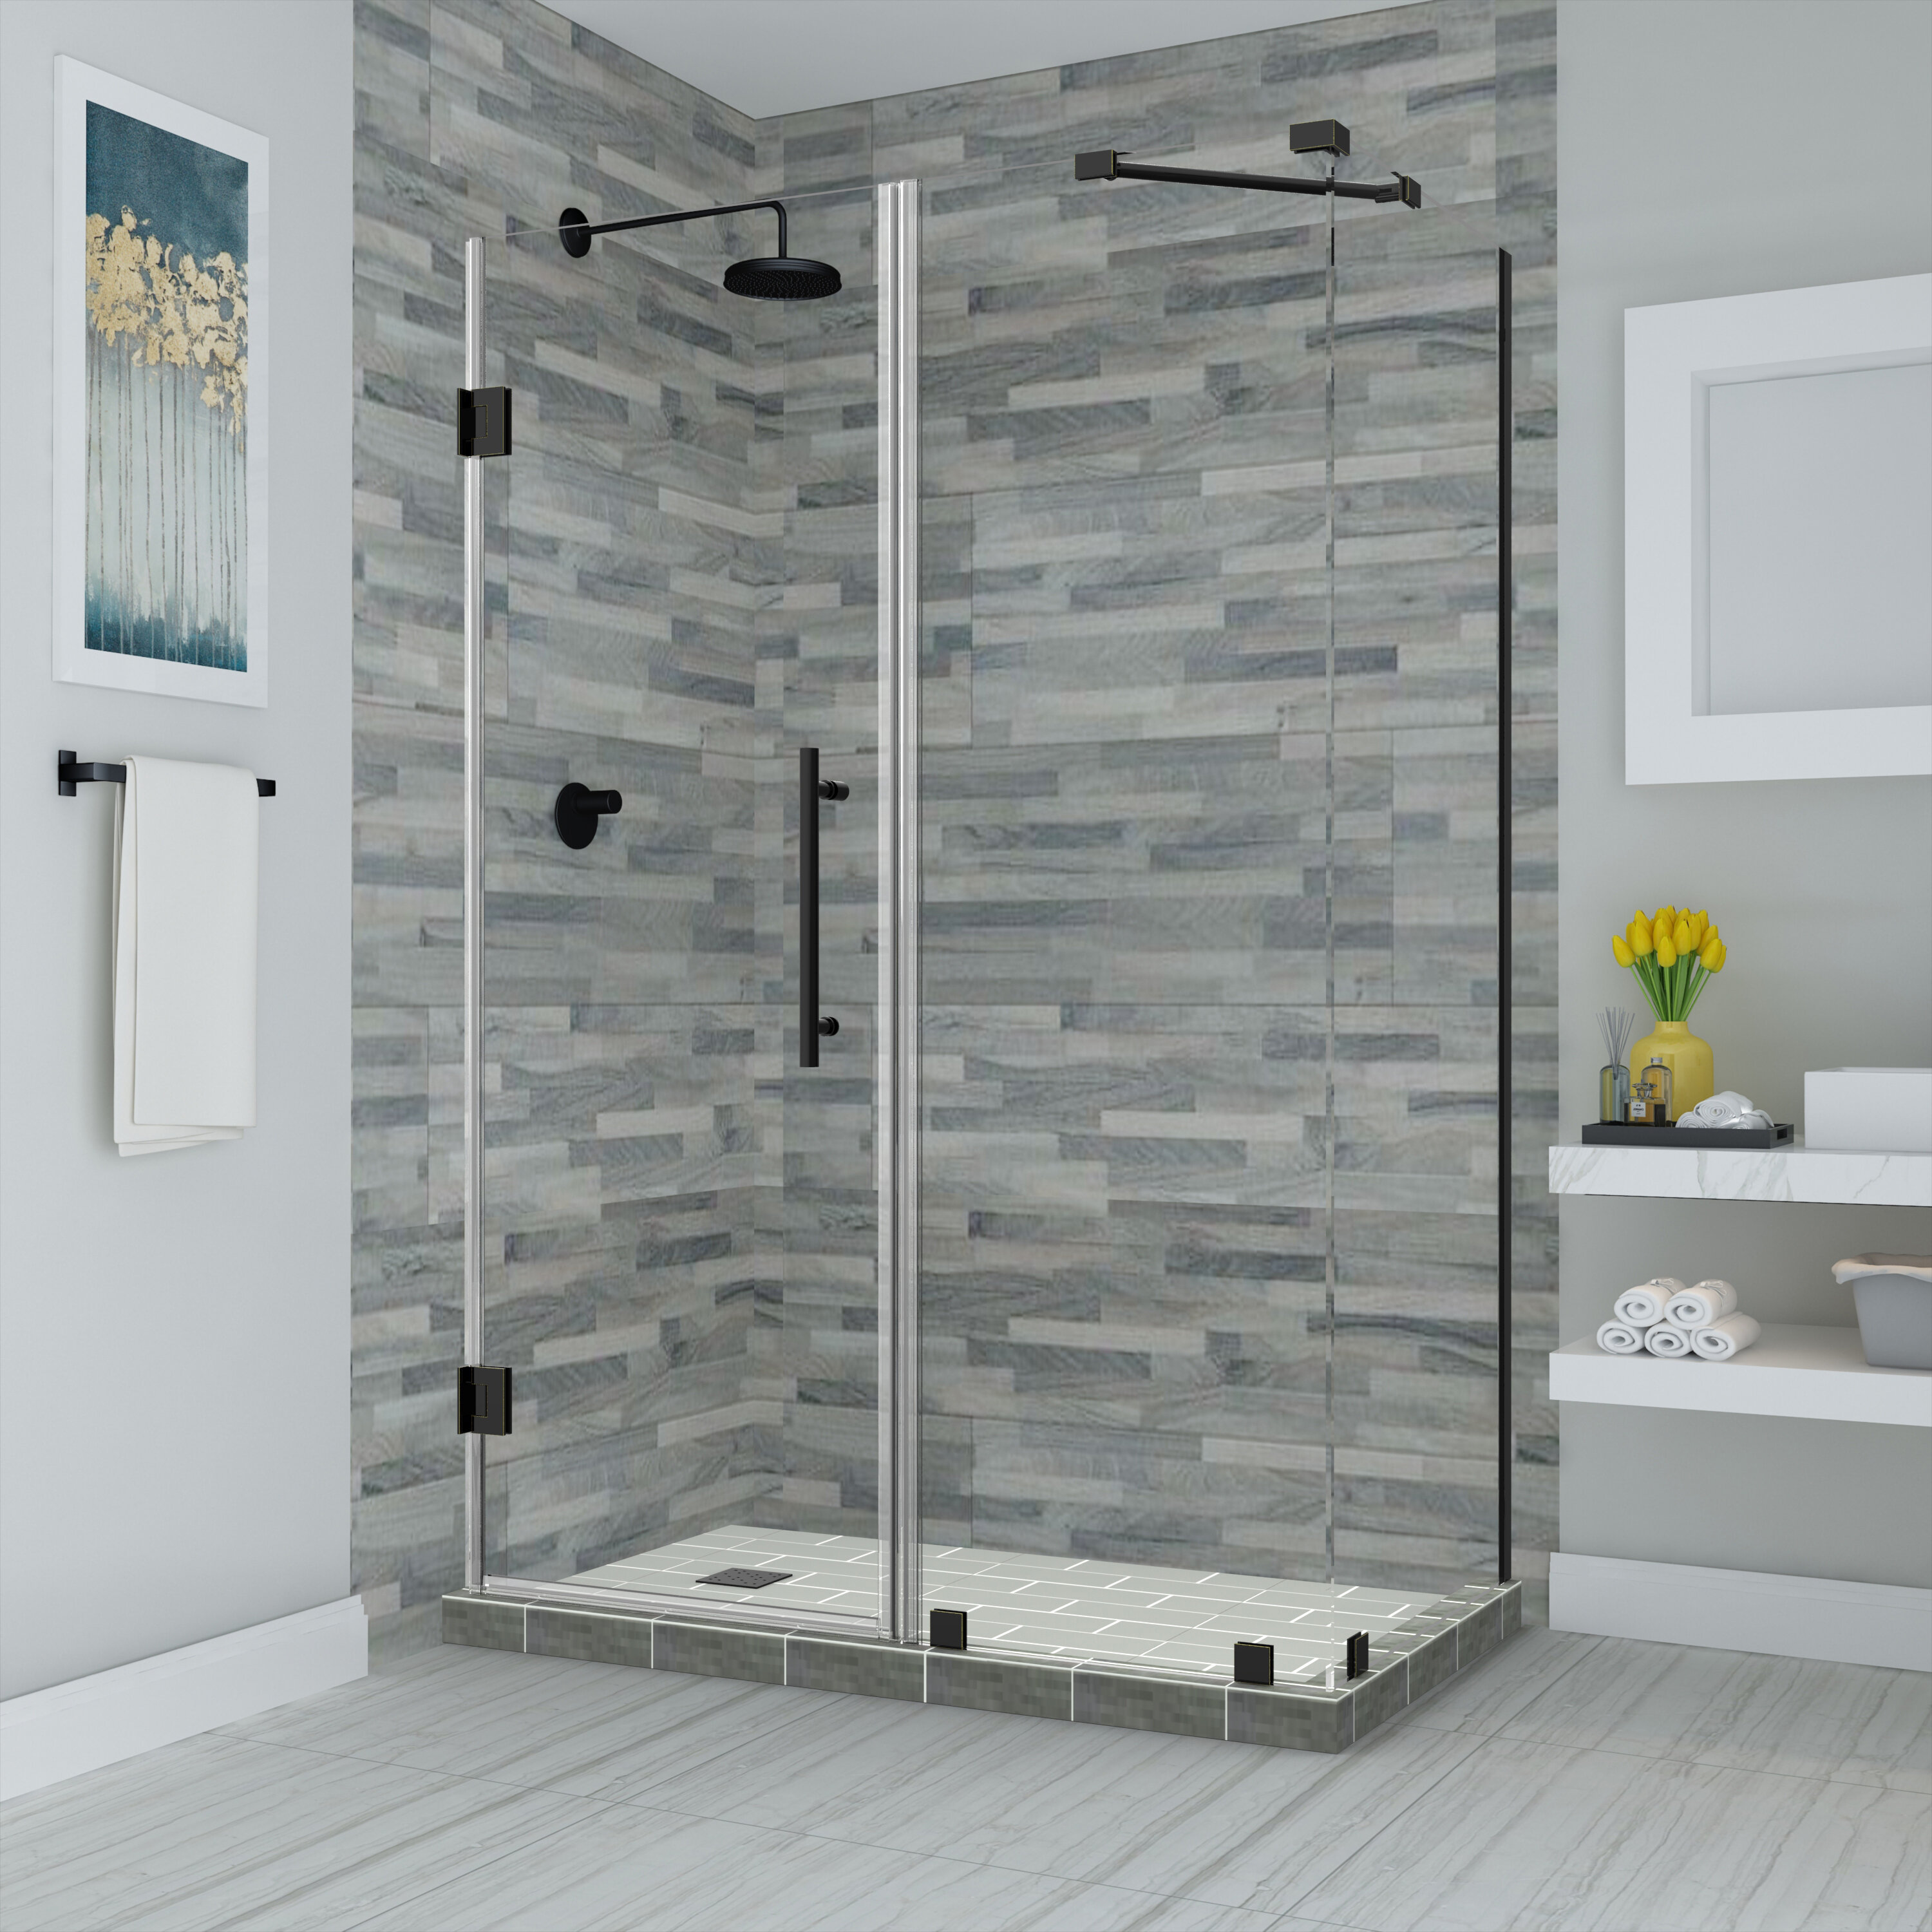 Bromley 45 25 In To 46 25 In X 34 375 In X 72 In Frameless Corner Hinged Shower Enclosure In Matte Black